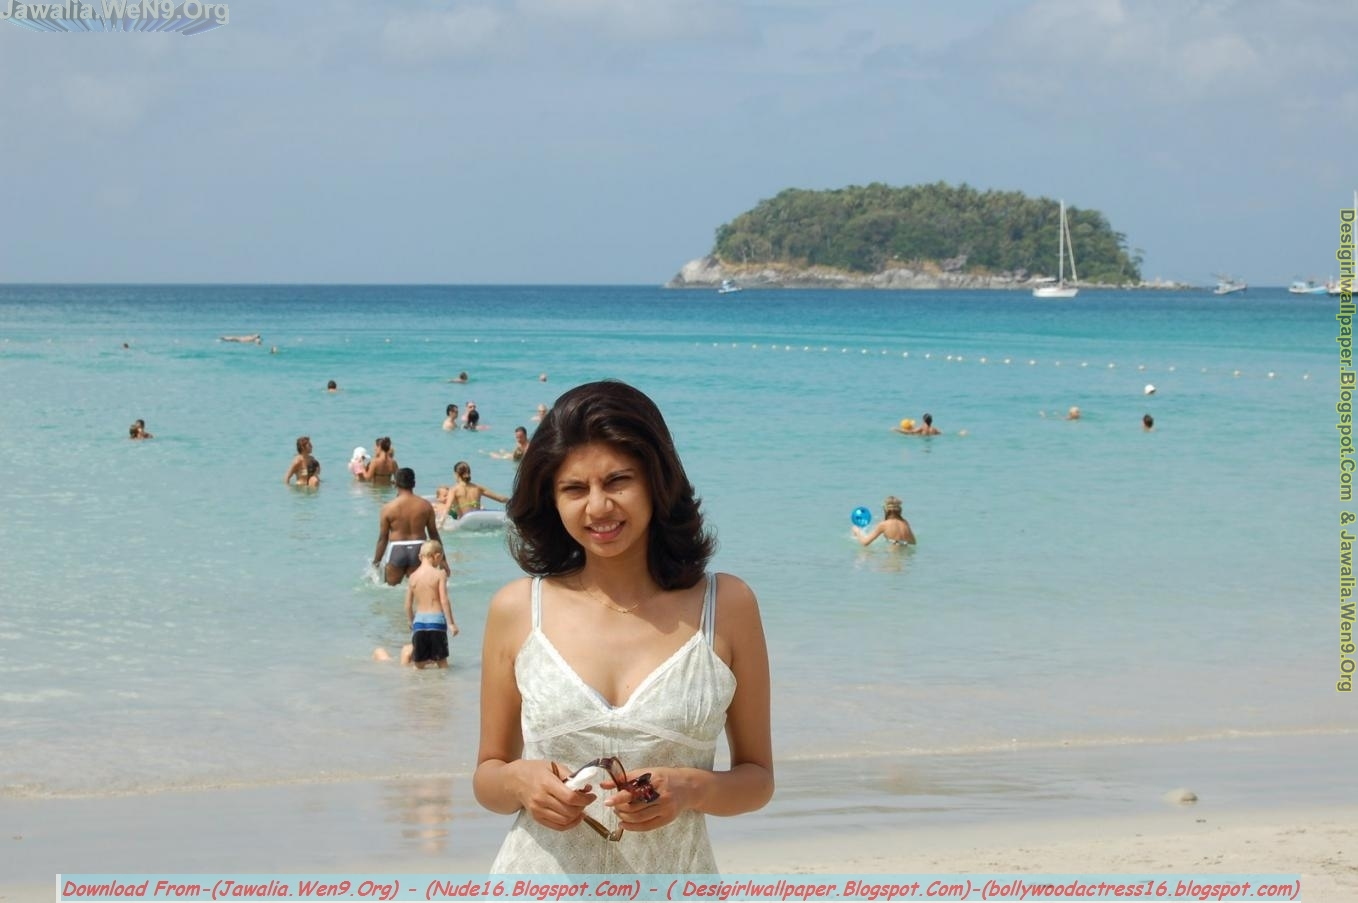 Indias No-1 Desi Girls Wallpapers Collection Hubpages -8862